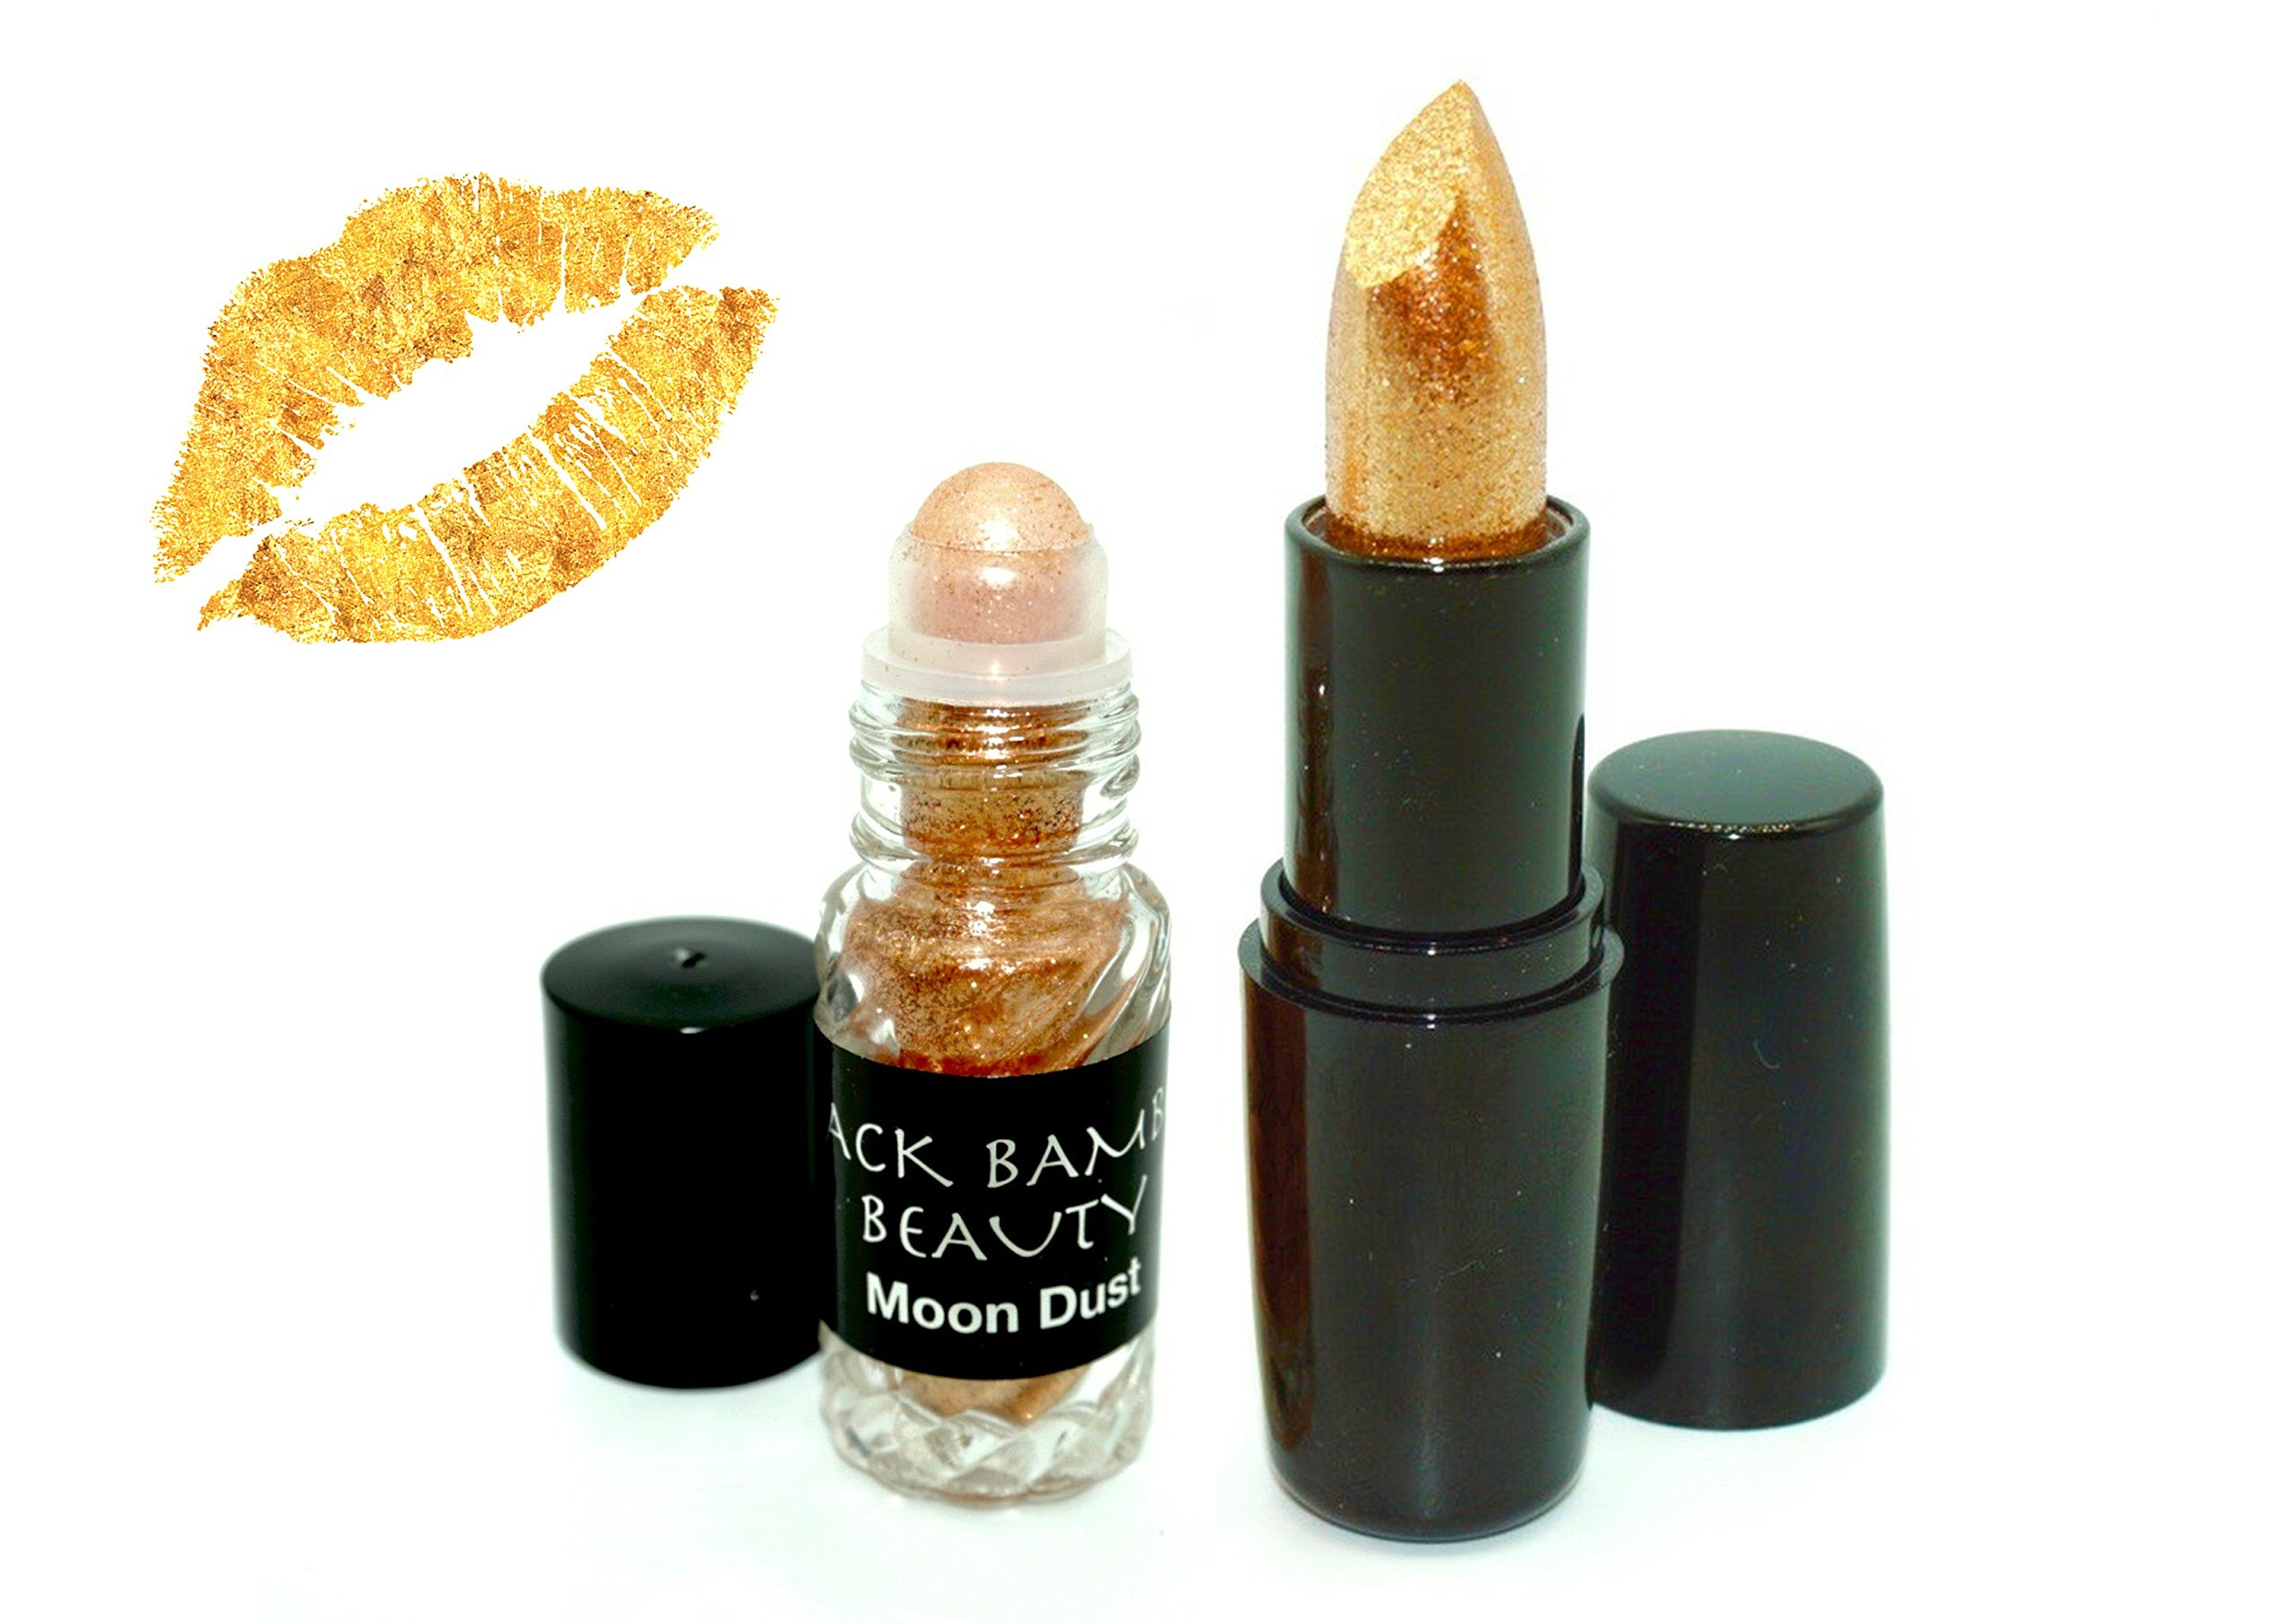 GOLD BODY GLITTER AND LIPSTICK SET | Special Offer | Includes 24K Gold Matte Moisturizing Lipstick and BONUS Gold Holographic Body Glitter | Perfect for Parties, Raves, Festivals or Celebrations | by Black Bamboo (Image #3)